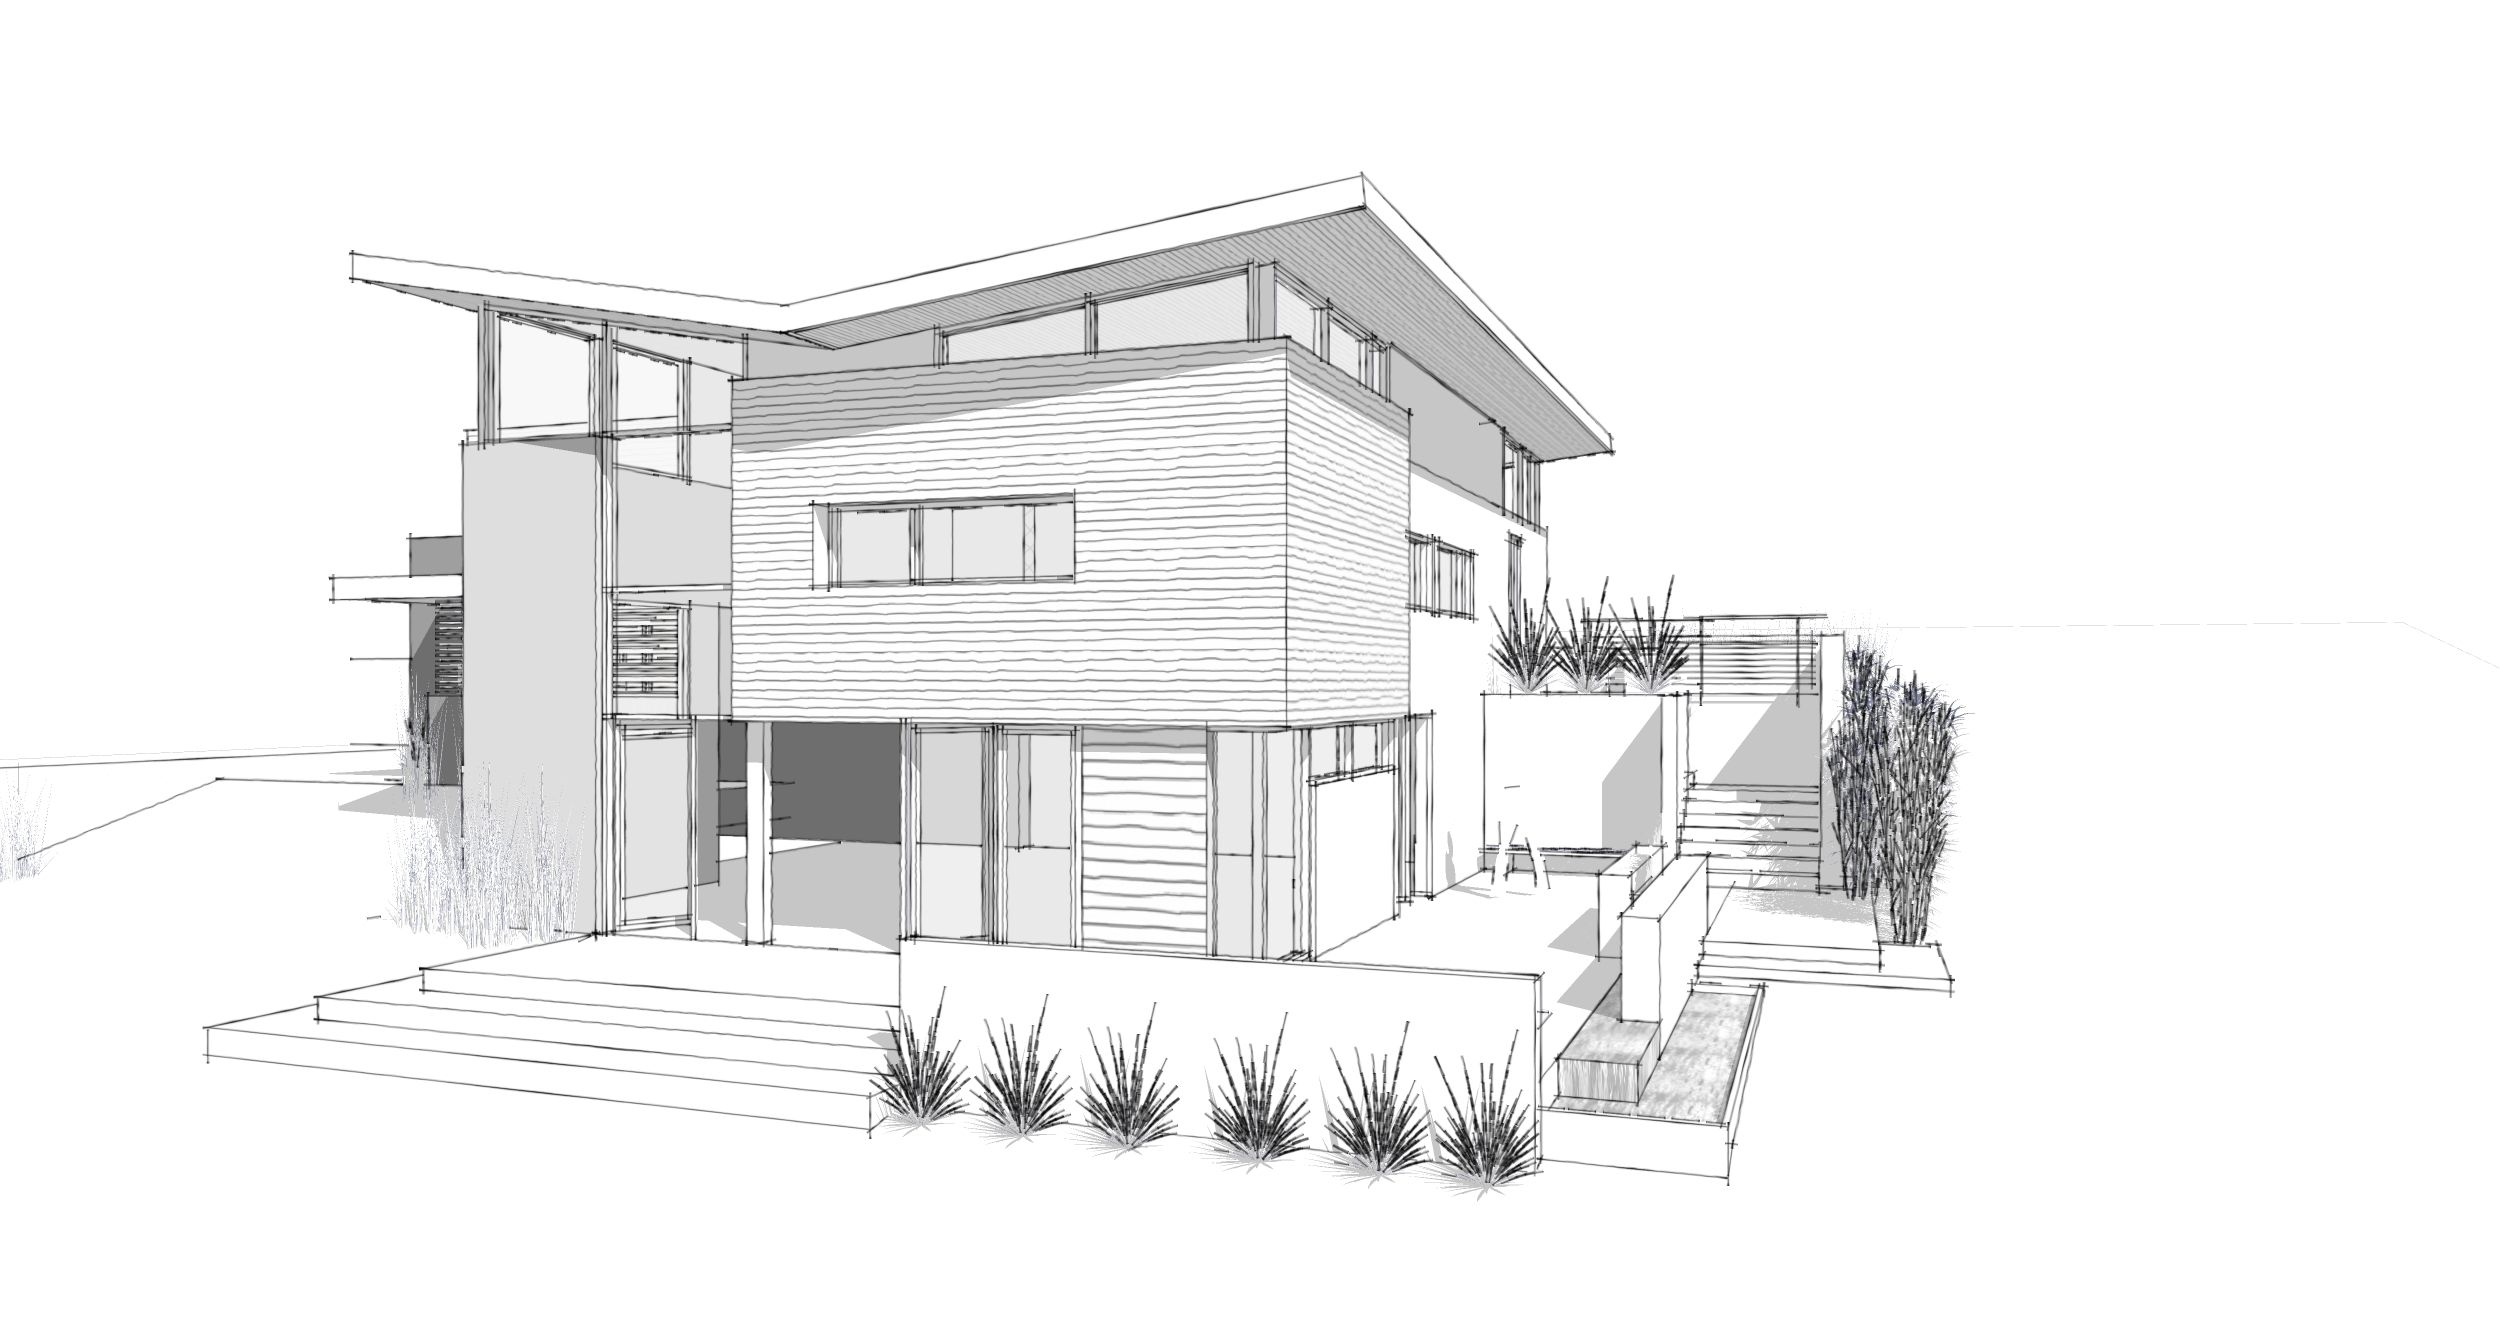 Modern home architecture sketches design ideas 13435 for Architecture plan drawing